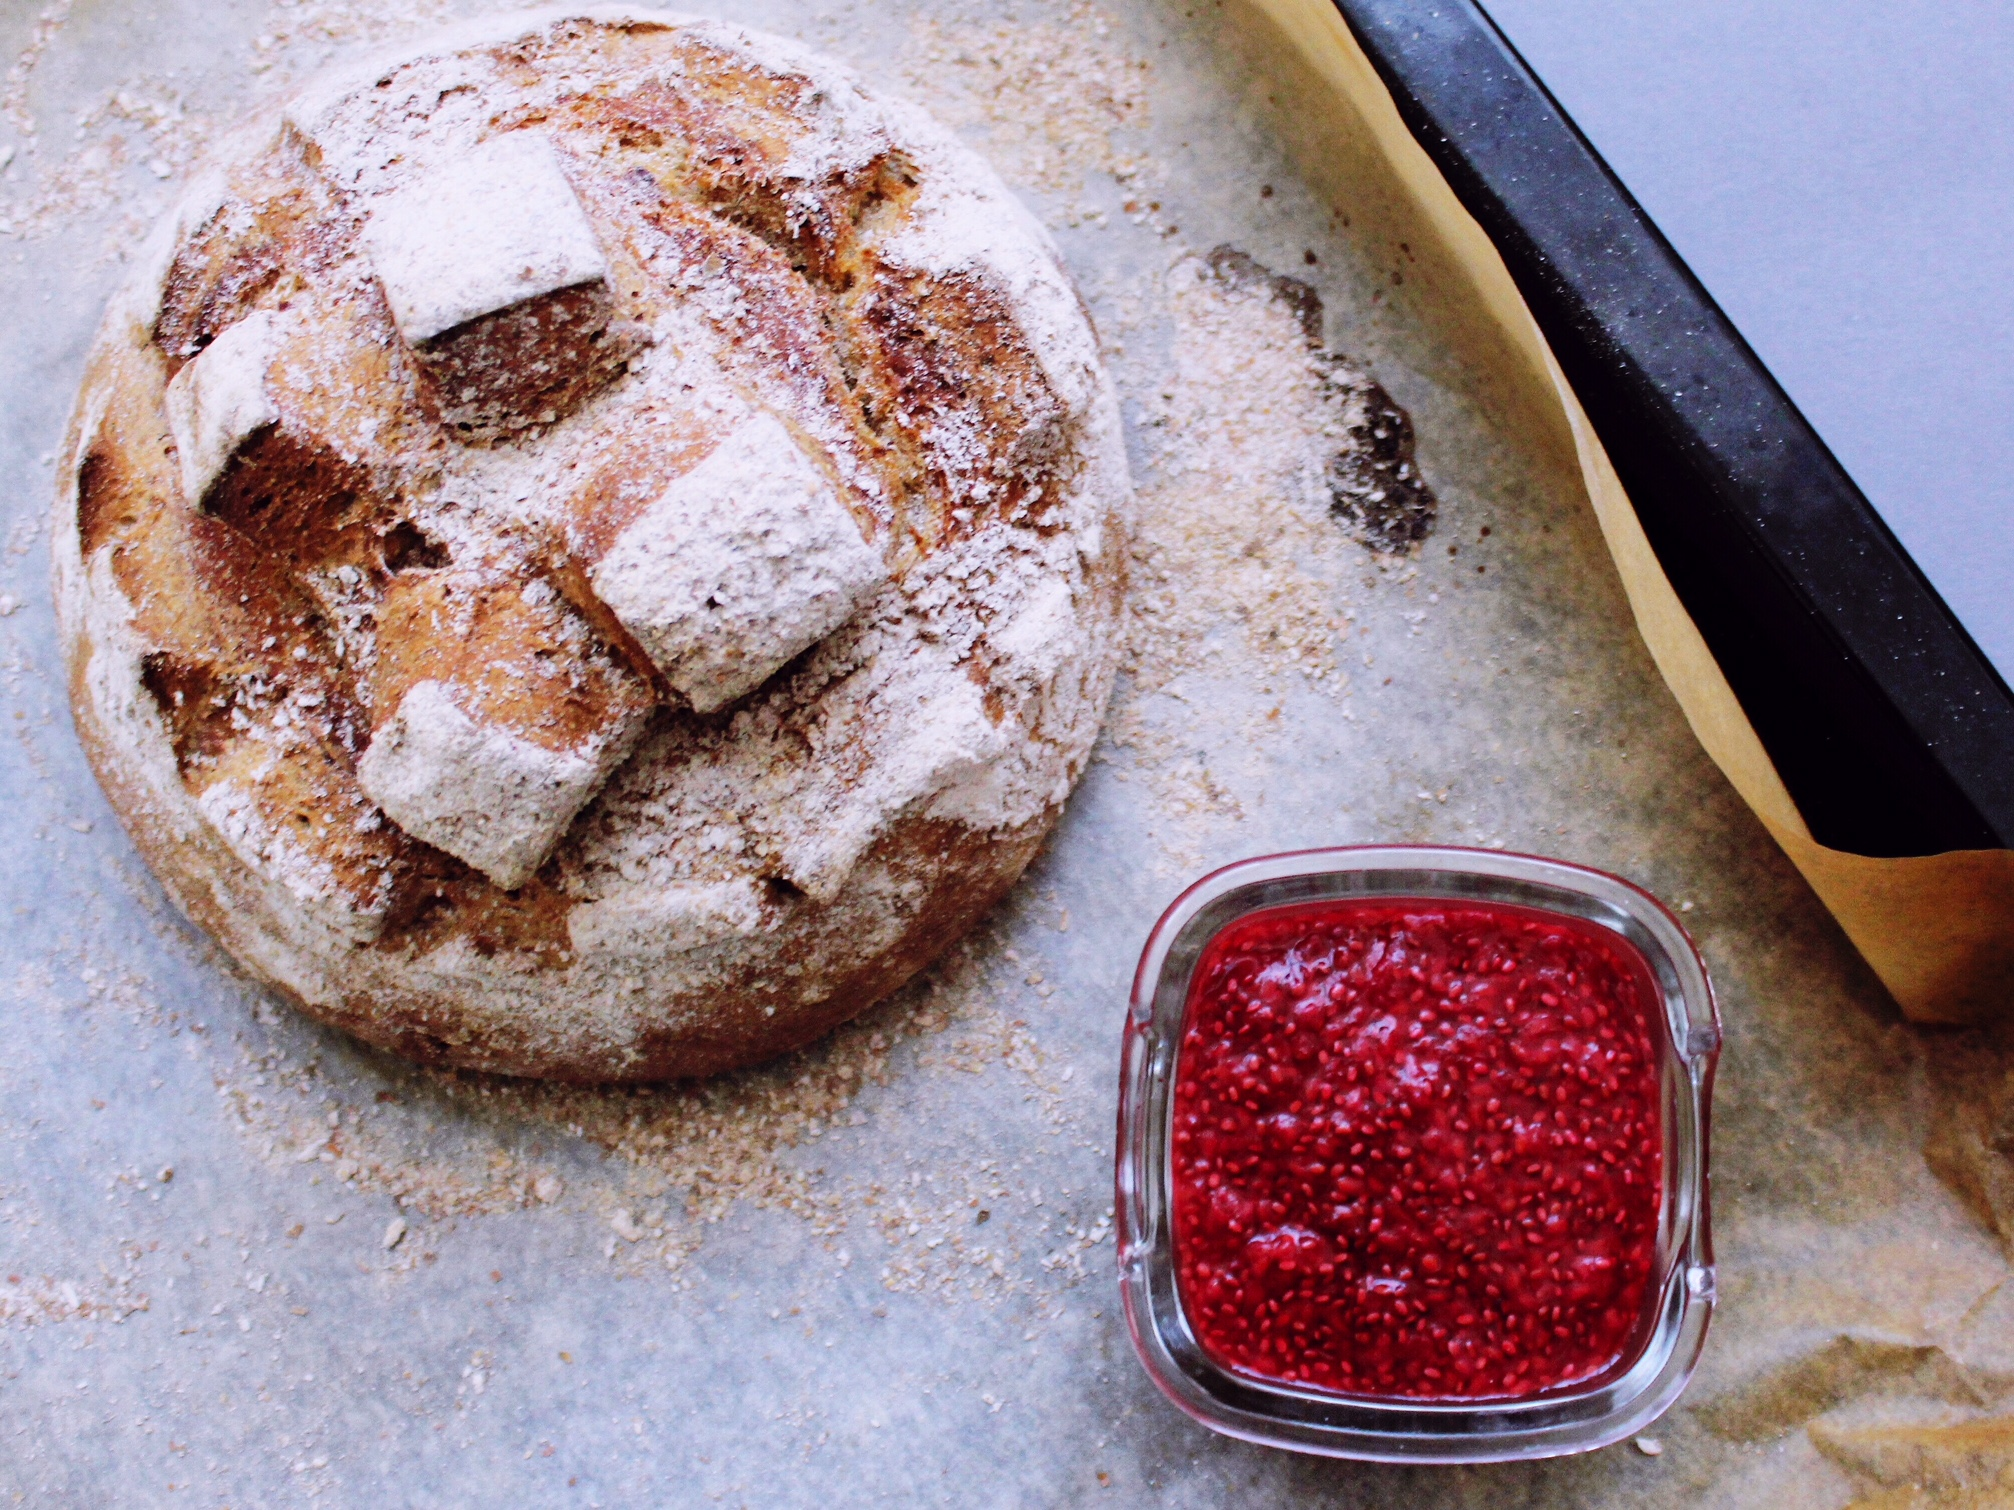 Bake your own sourdough - tips and tricks to make it easy